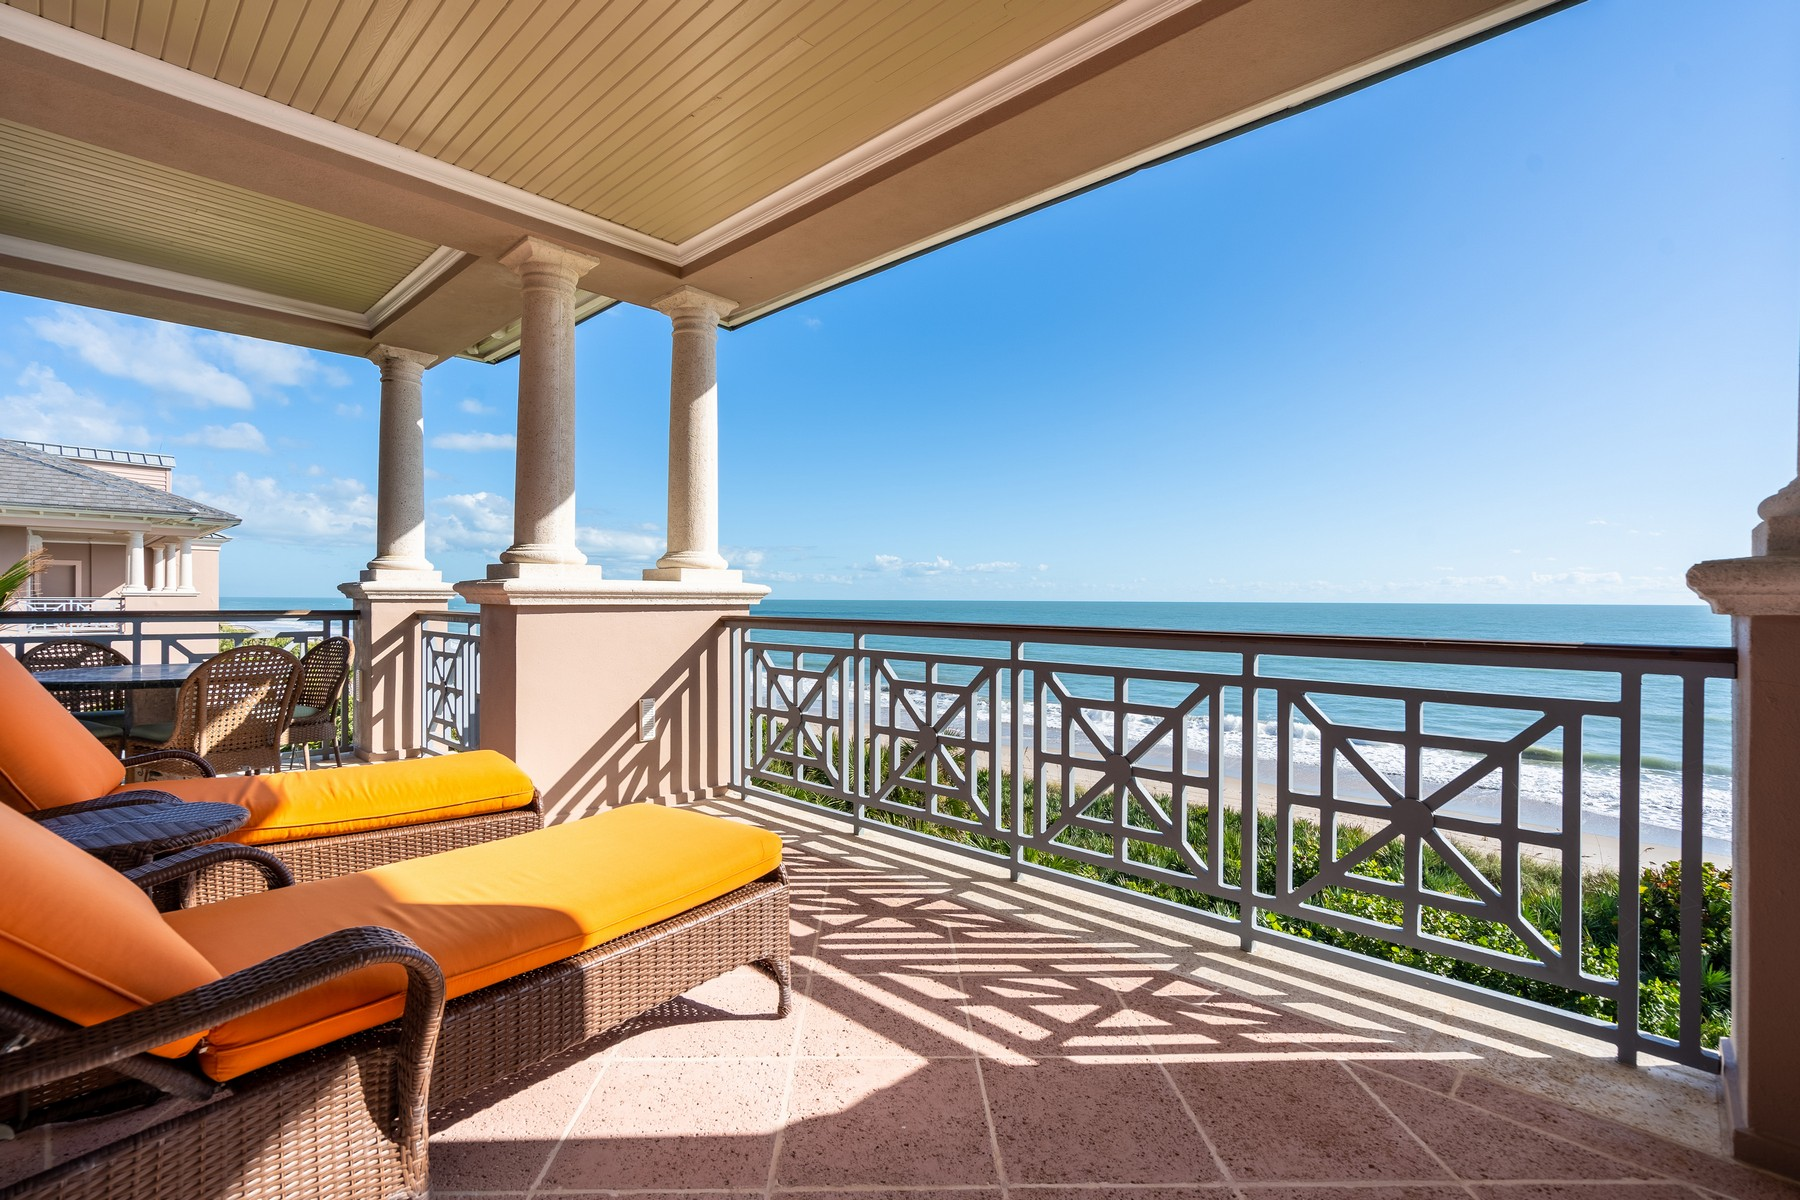 Additional photo for property listing at Oceanfront Penthouse 80 Beachside Drive #301 Vero Beach, Florida 32963 United States